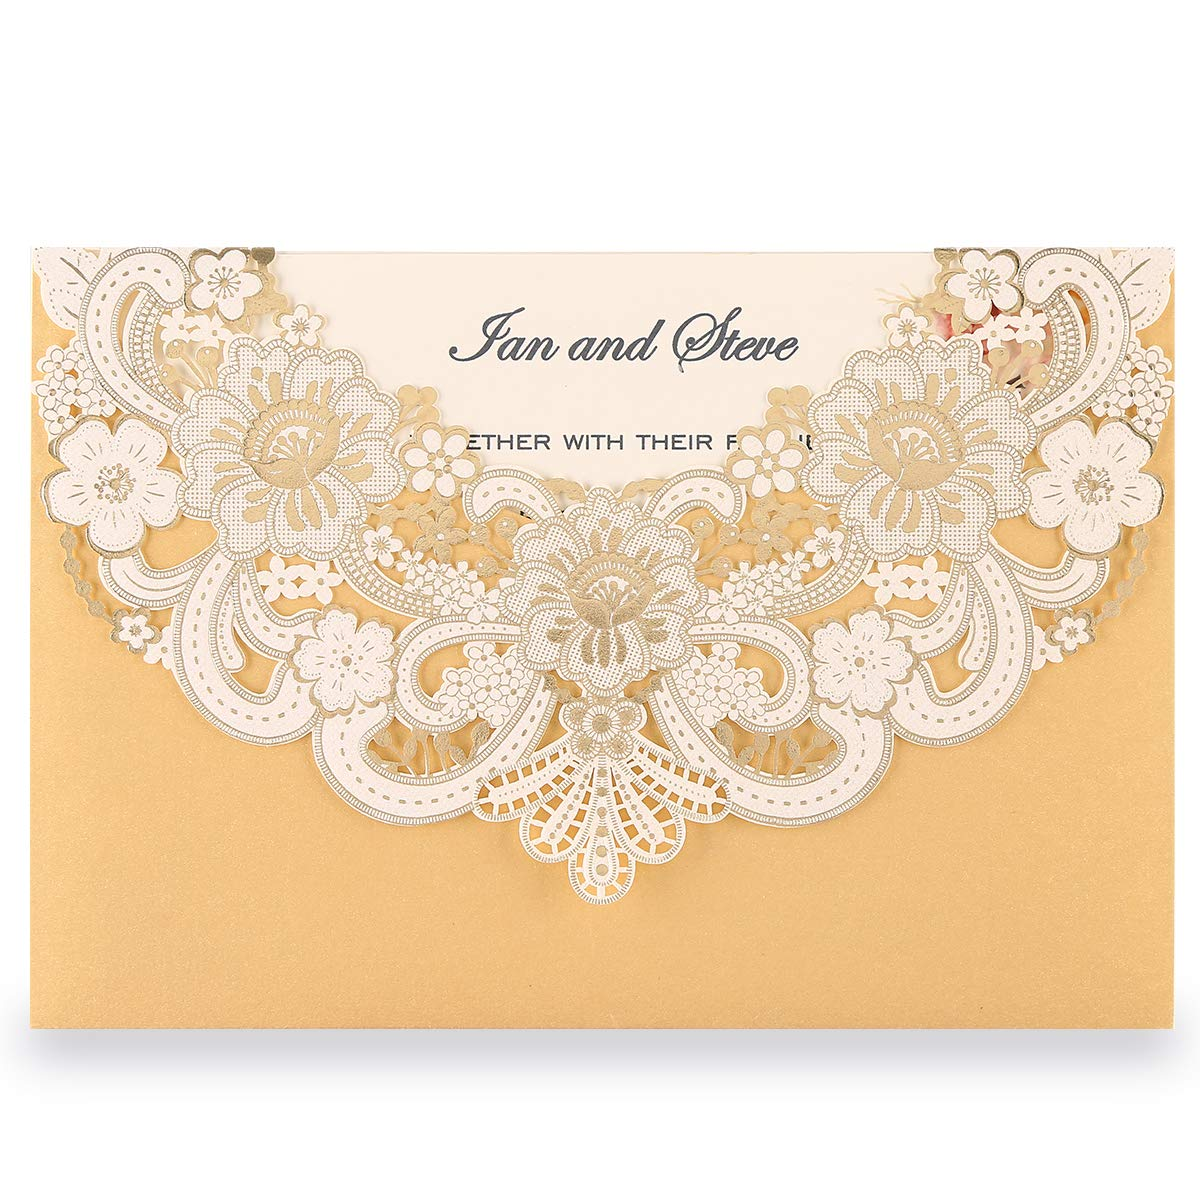 Doris Home Gold Laser Cut Flora Lace invitation cards with Blank Inner Sheets and envelopes for wedding invitations, Bridal Shower, Engagement, Birthday, Baby Shower (50) (Gold 50pcs)